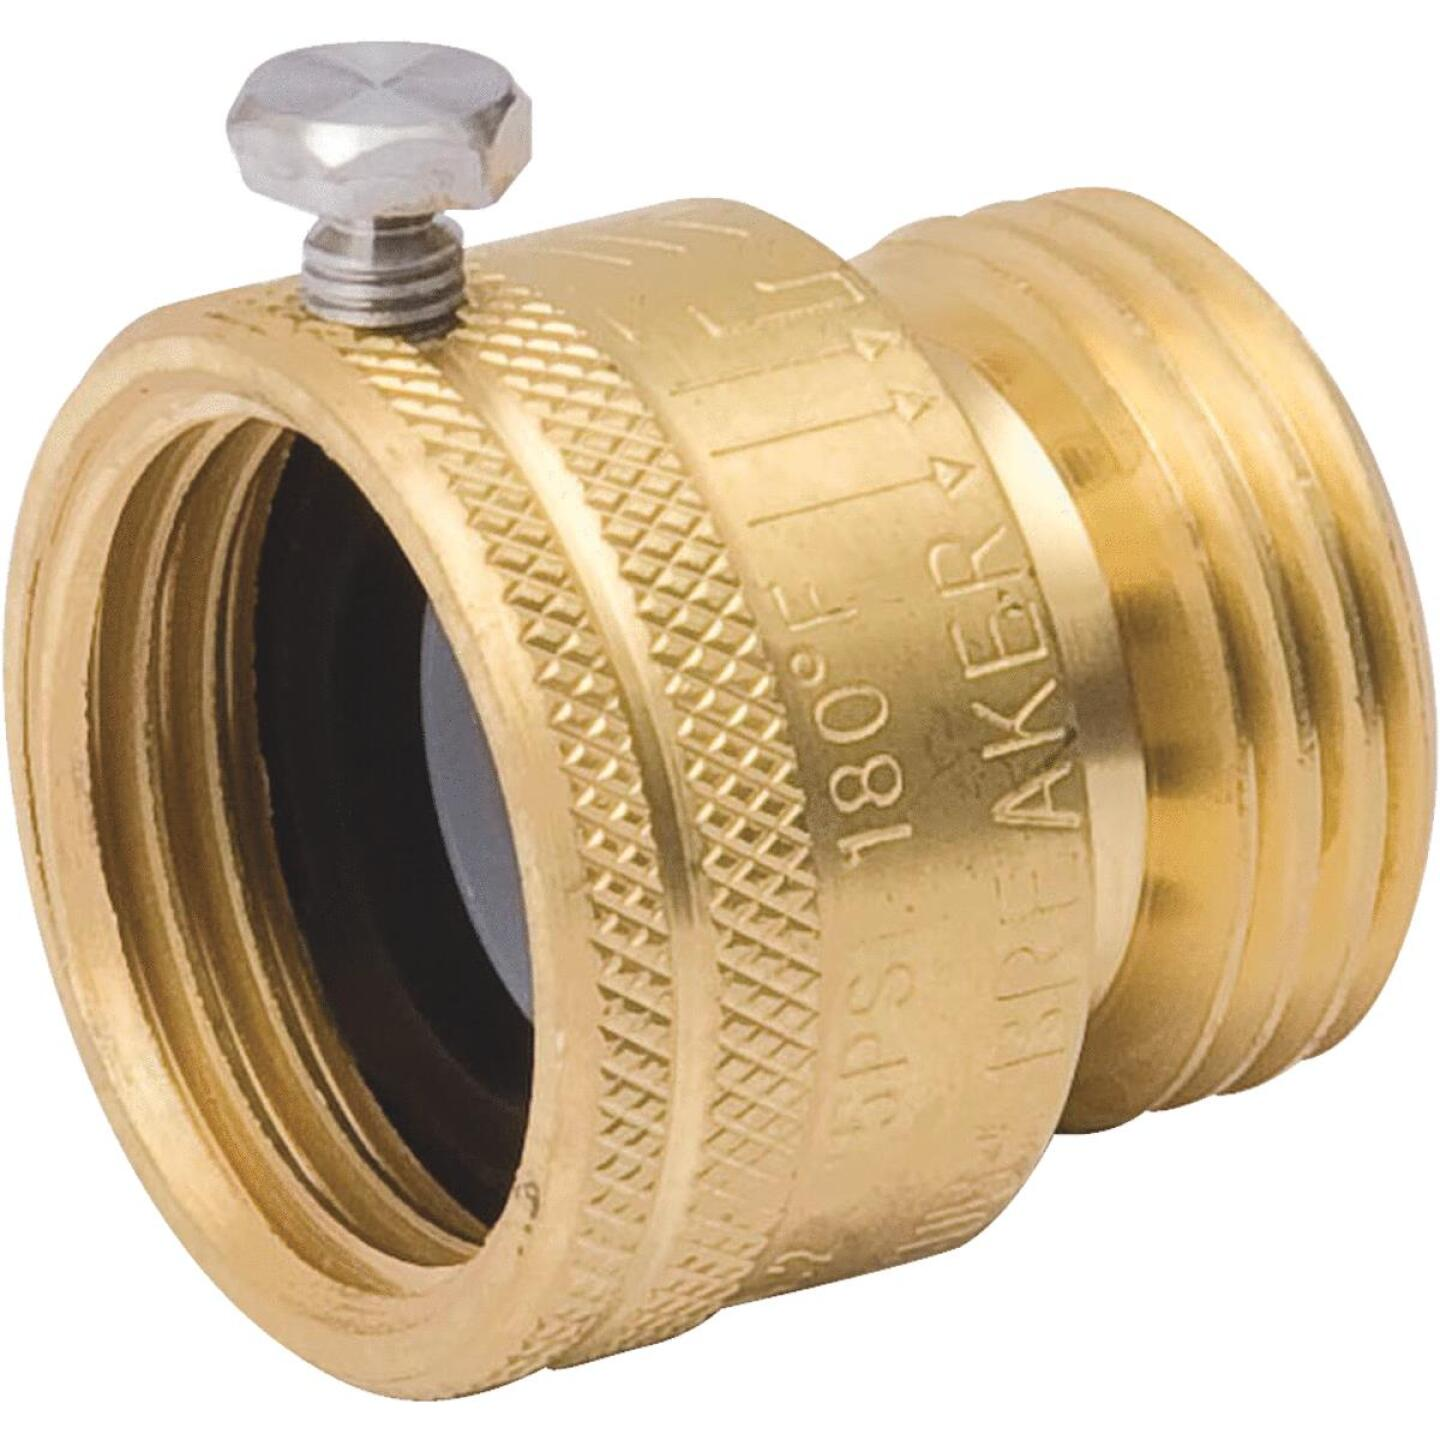 B&K Low Lead Backflow Preventer Vacuum Breaker Image 1